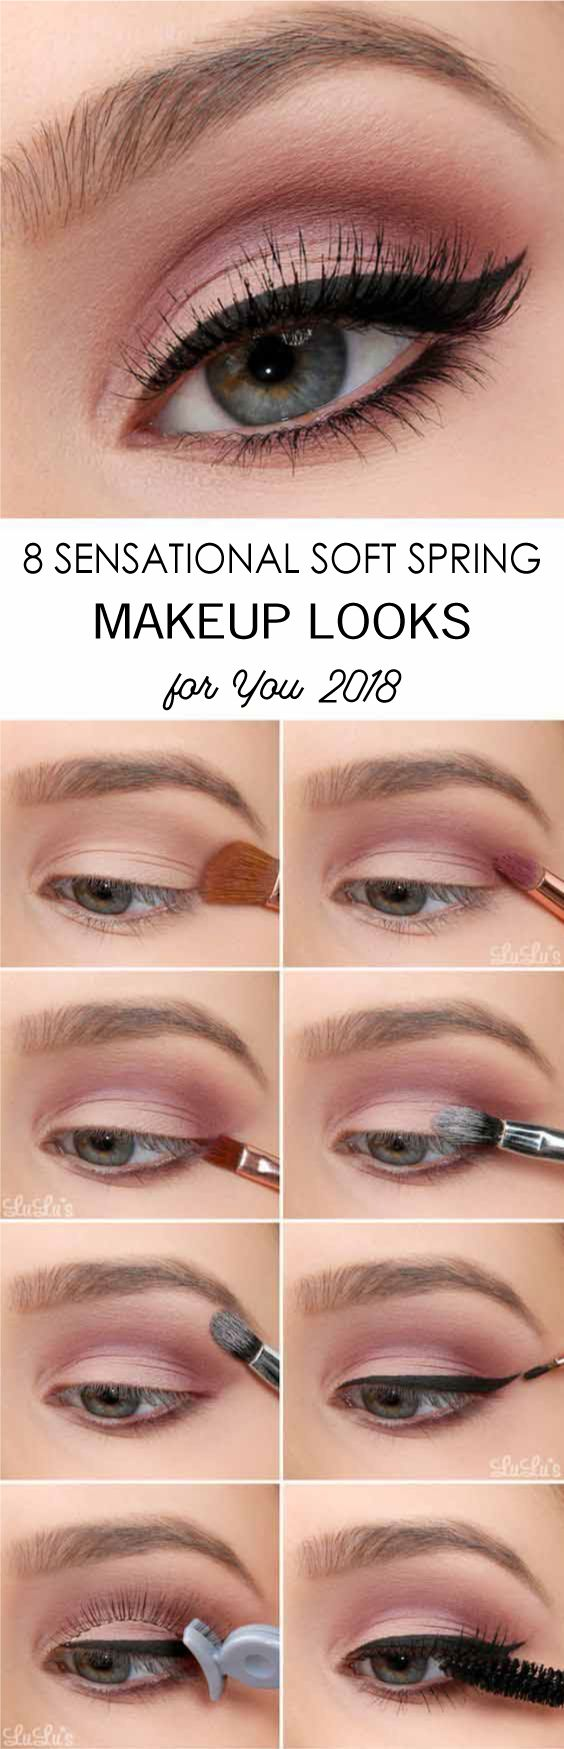 If  you are looking for a soft spring makeup no worry you are in the right  place.  We are here to give you ideas  about all kinds of soft makeup you can pair with the dresses or shoes. You can  get the looks in your summer or spring wedding day or as the brides maid.